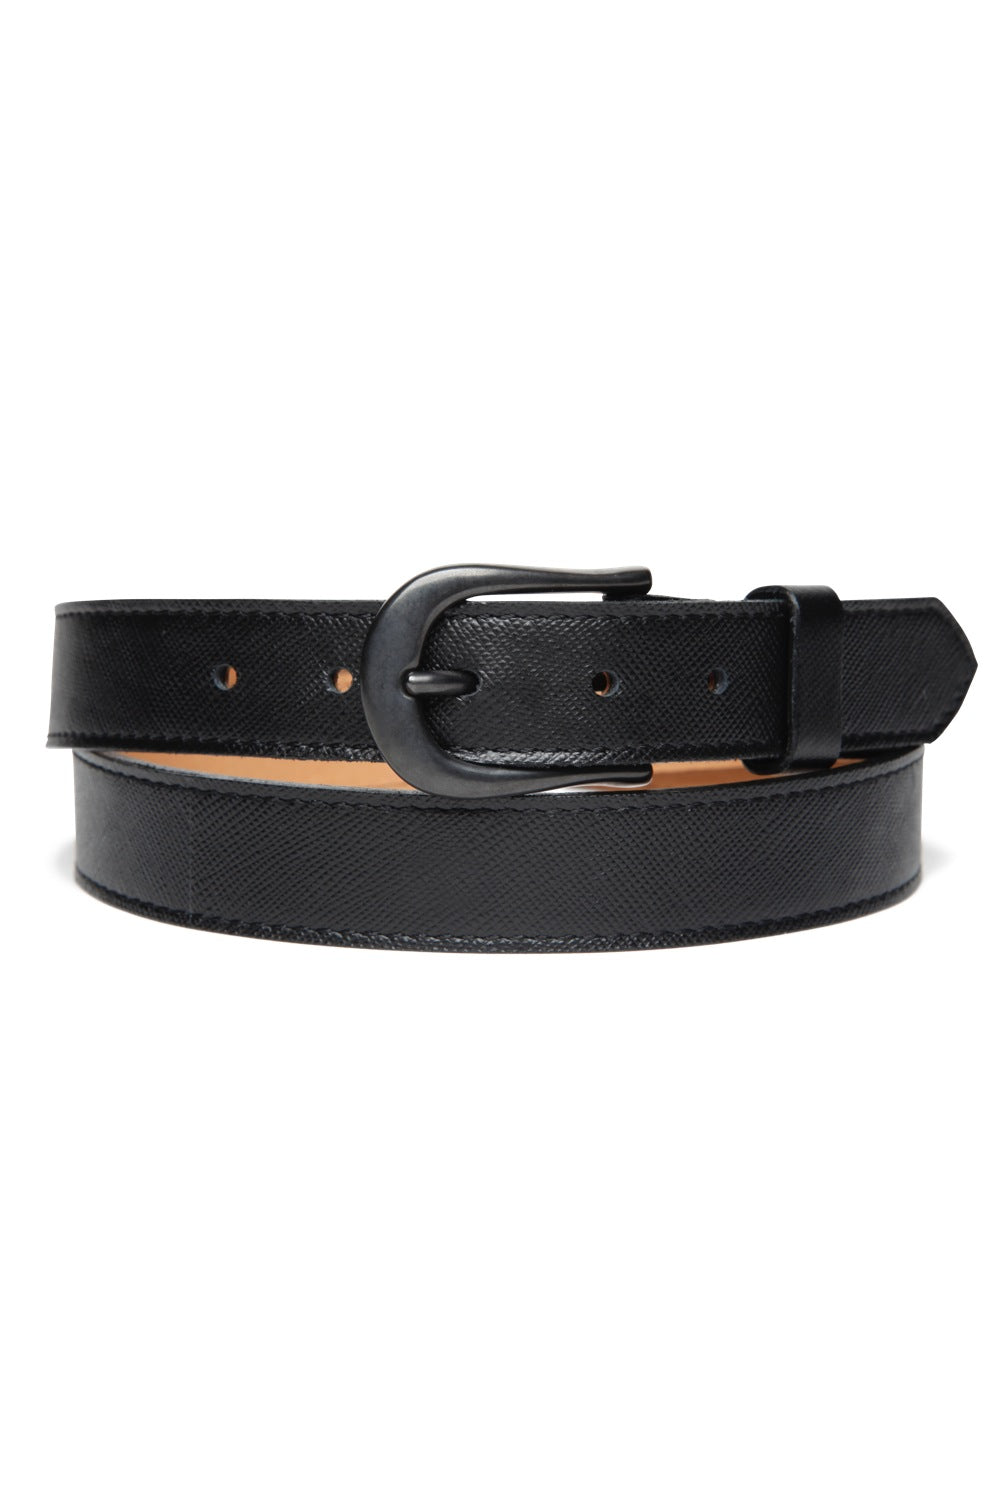 Lot.633 Horsehide Trousers Belt -Black-